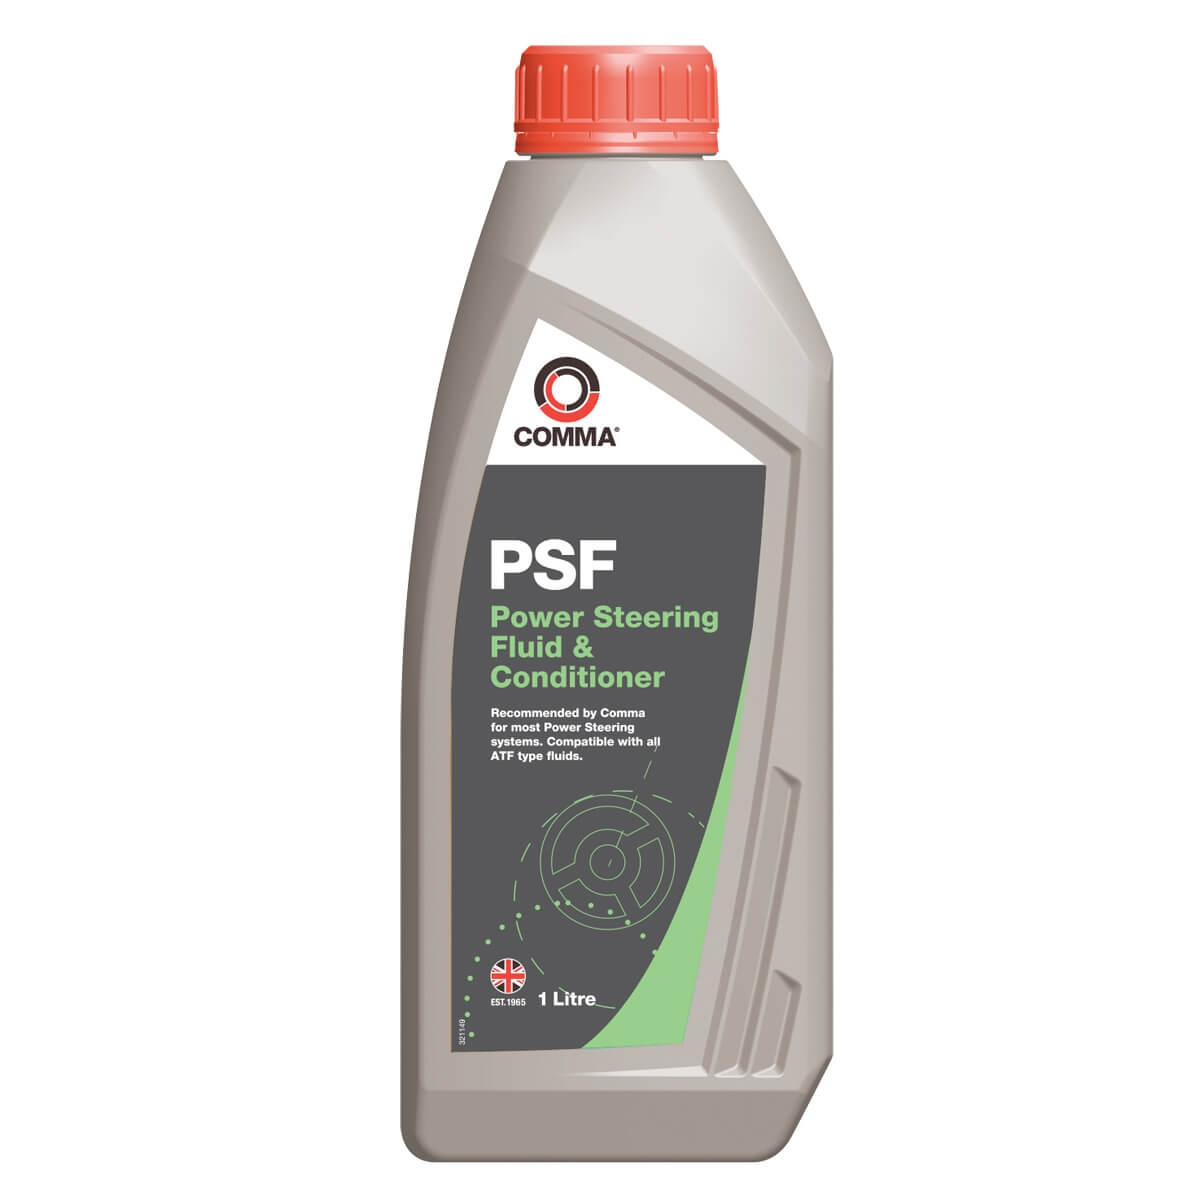 HYUNDAI PONY/EXCEL Power Steering Oil